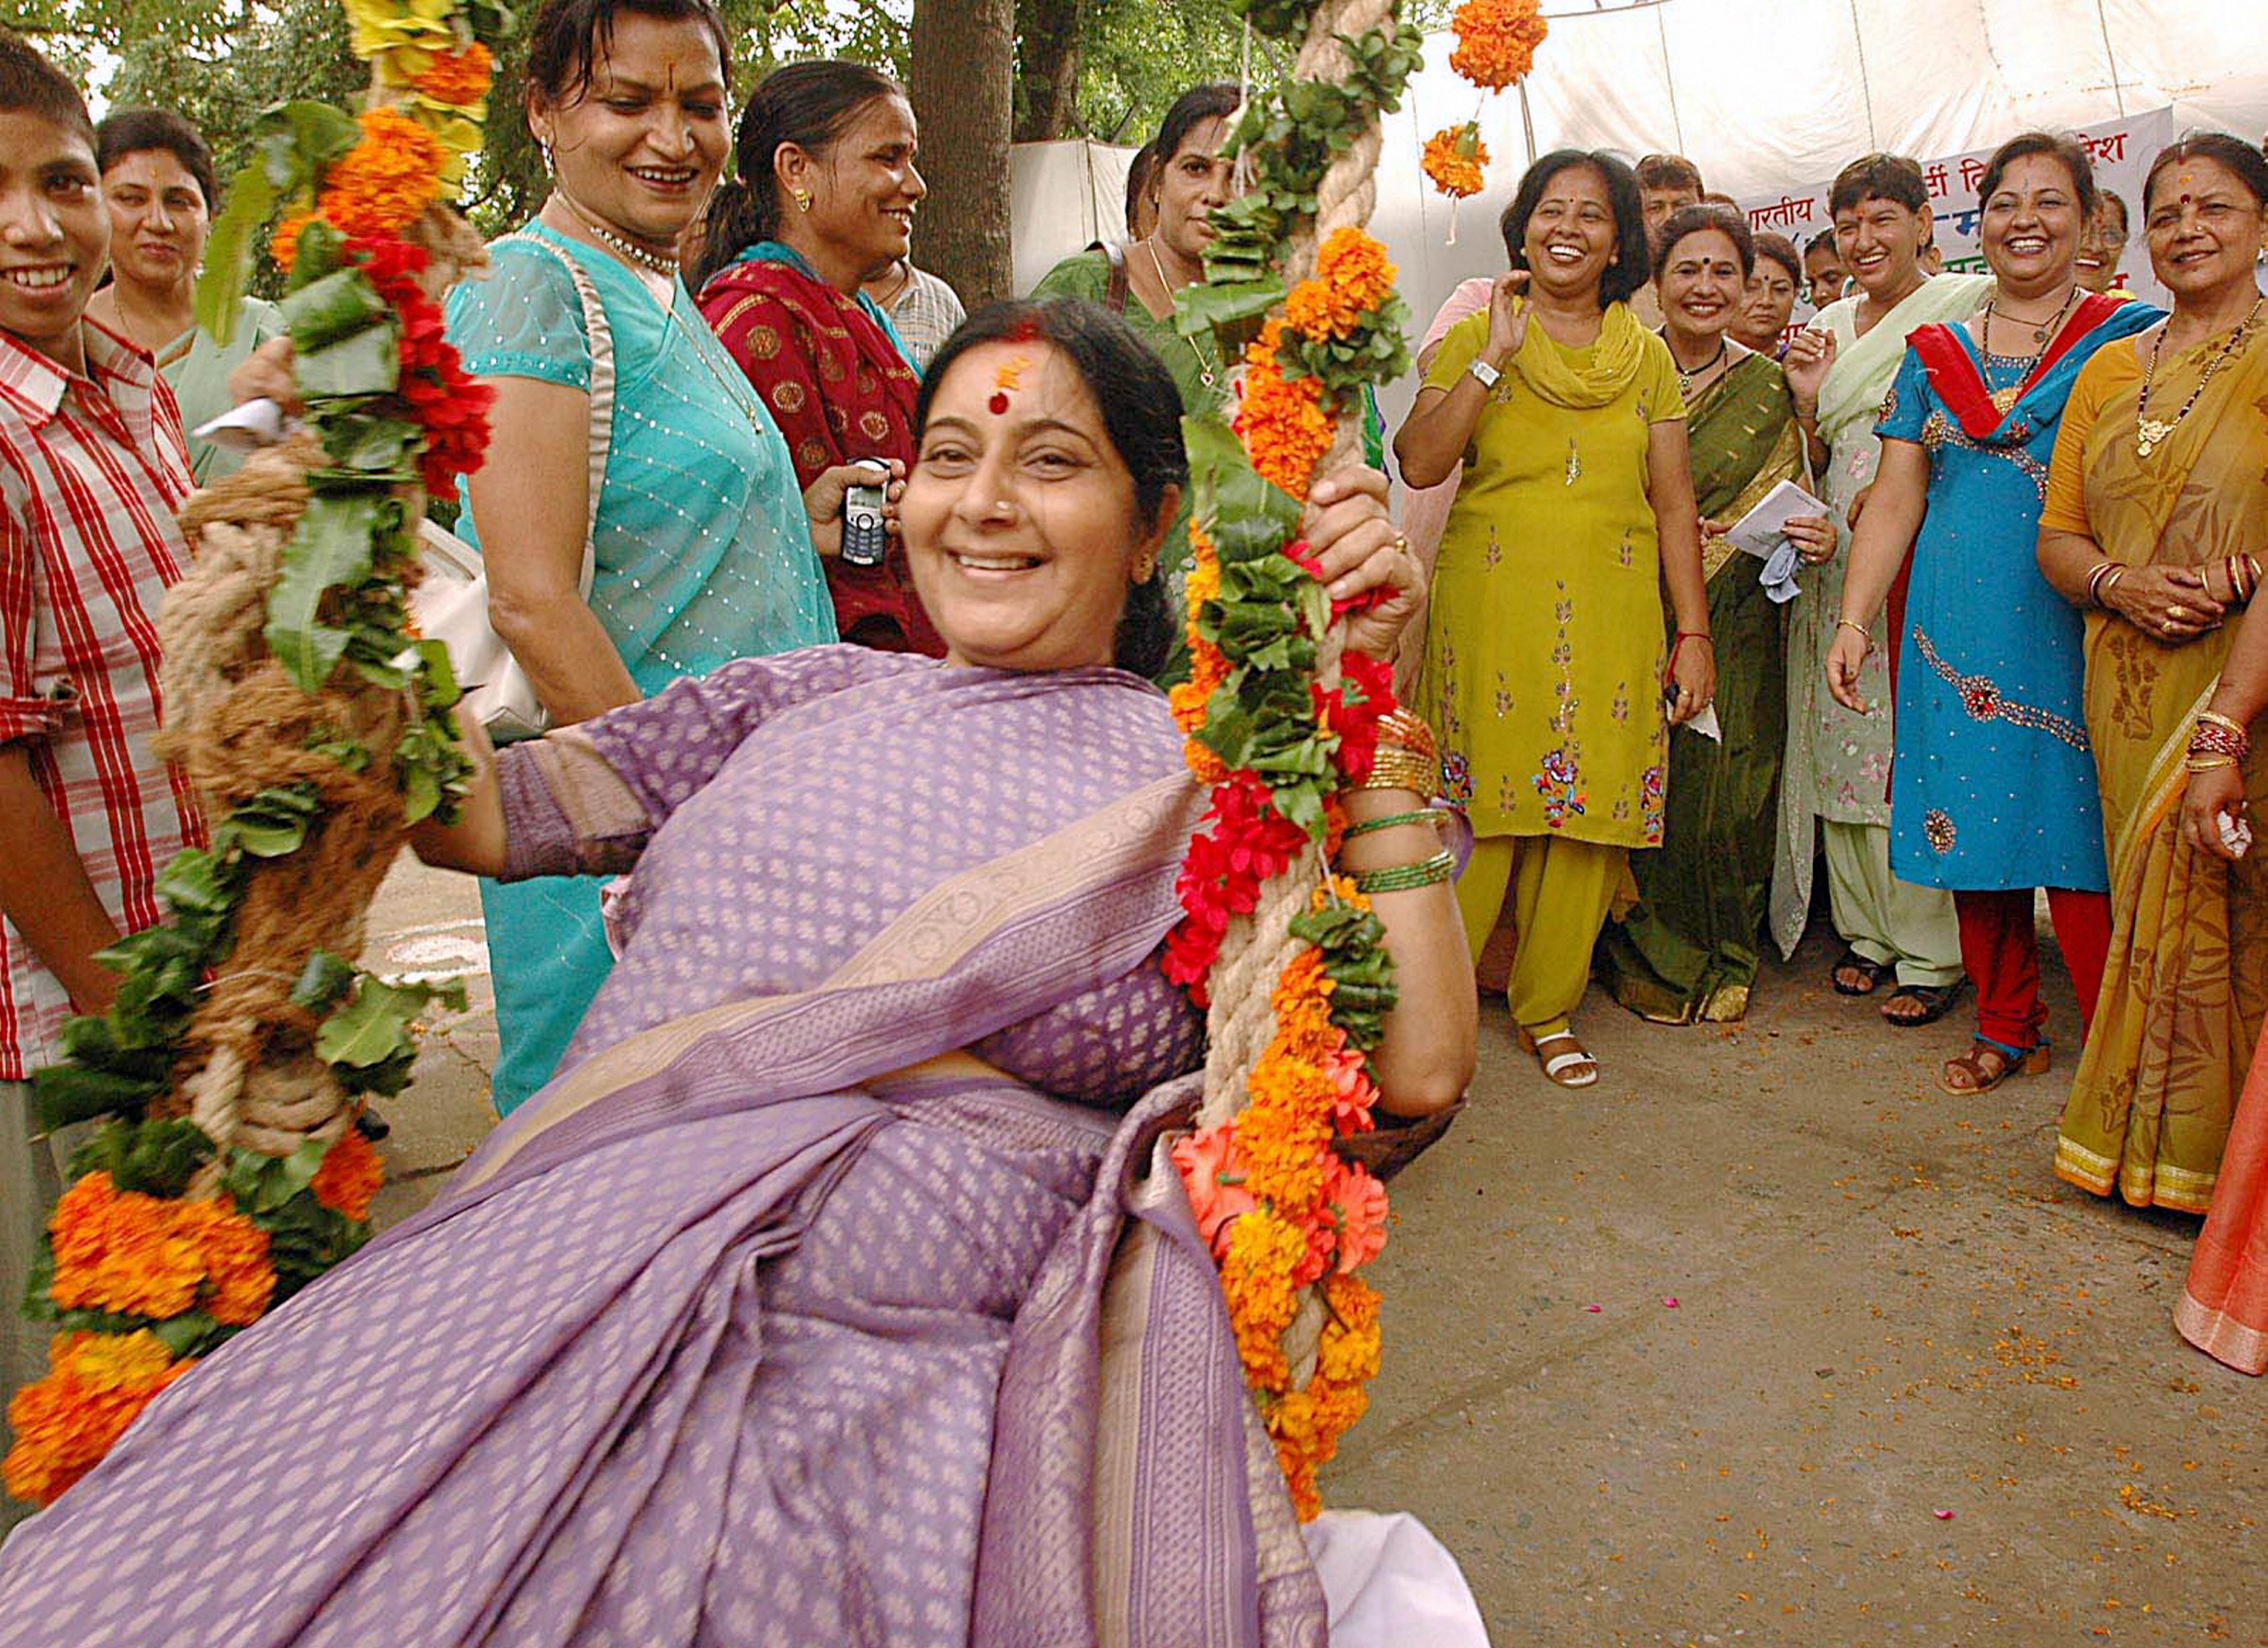 An August 5, 2005, photo, in which BJP MP Sushma Swaraj is on a swing during Teej in New Delhi.